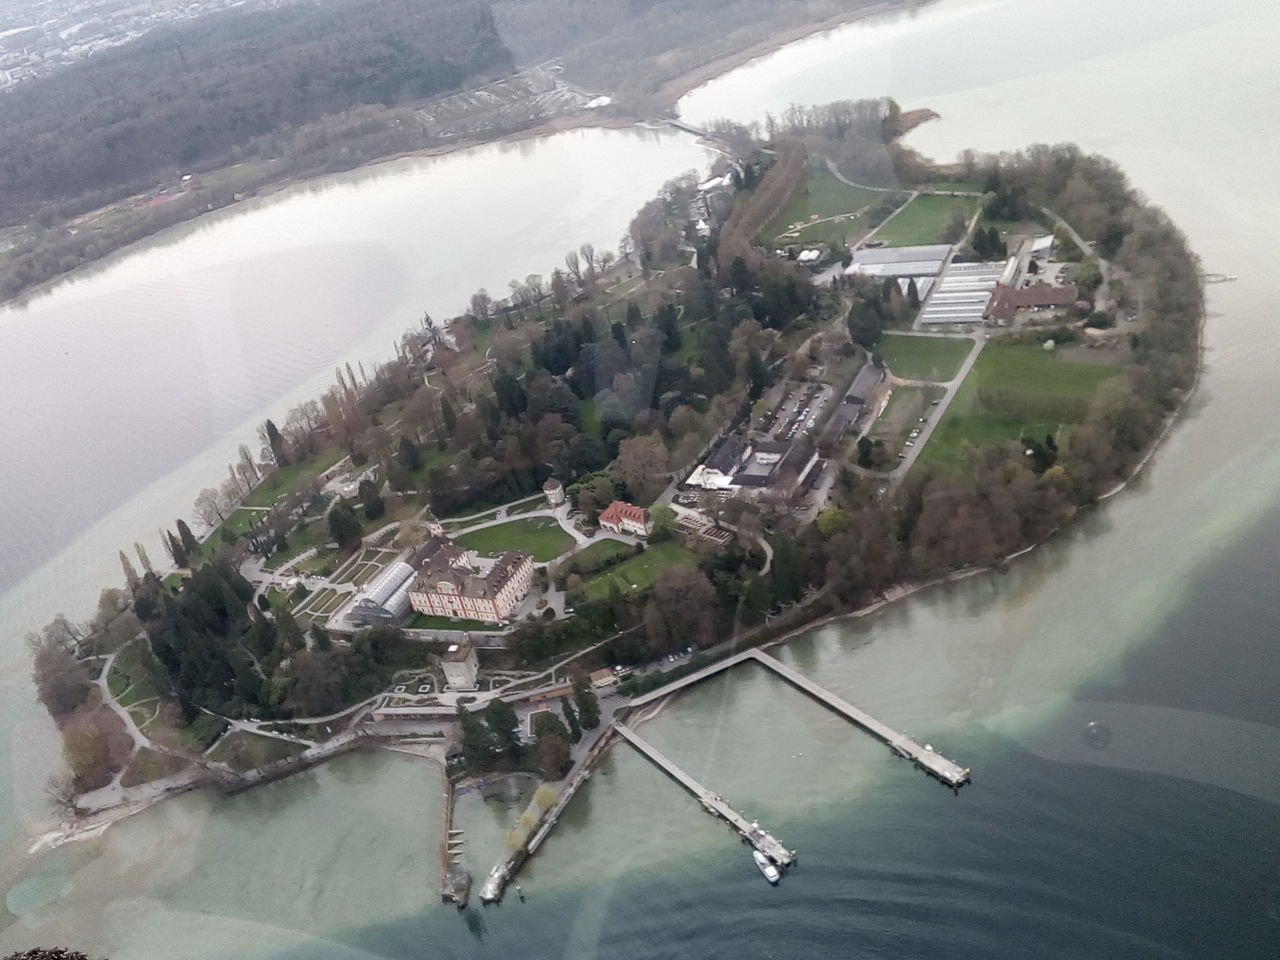 Lindau Bodensee Water Accidents And Disasters Aerial View Extreme Weather Building Exterior Natural Disaster Built Structure City High Angle View Environment Environmental Issues Nature Environmental Conservation Architecture Outdoors Tree Ecosystem  No People Cityscape Day